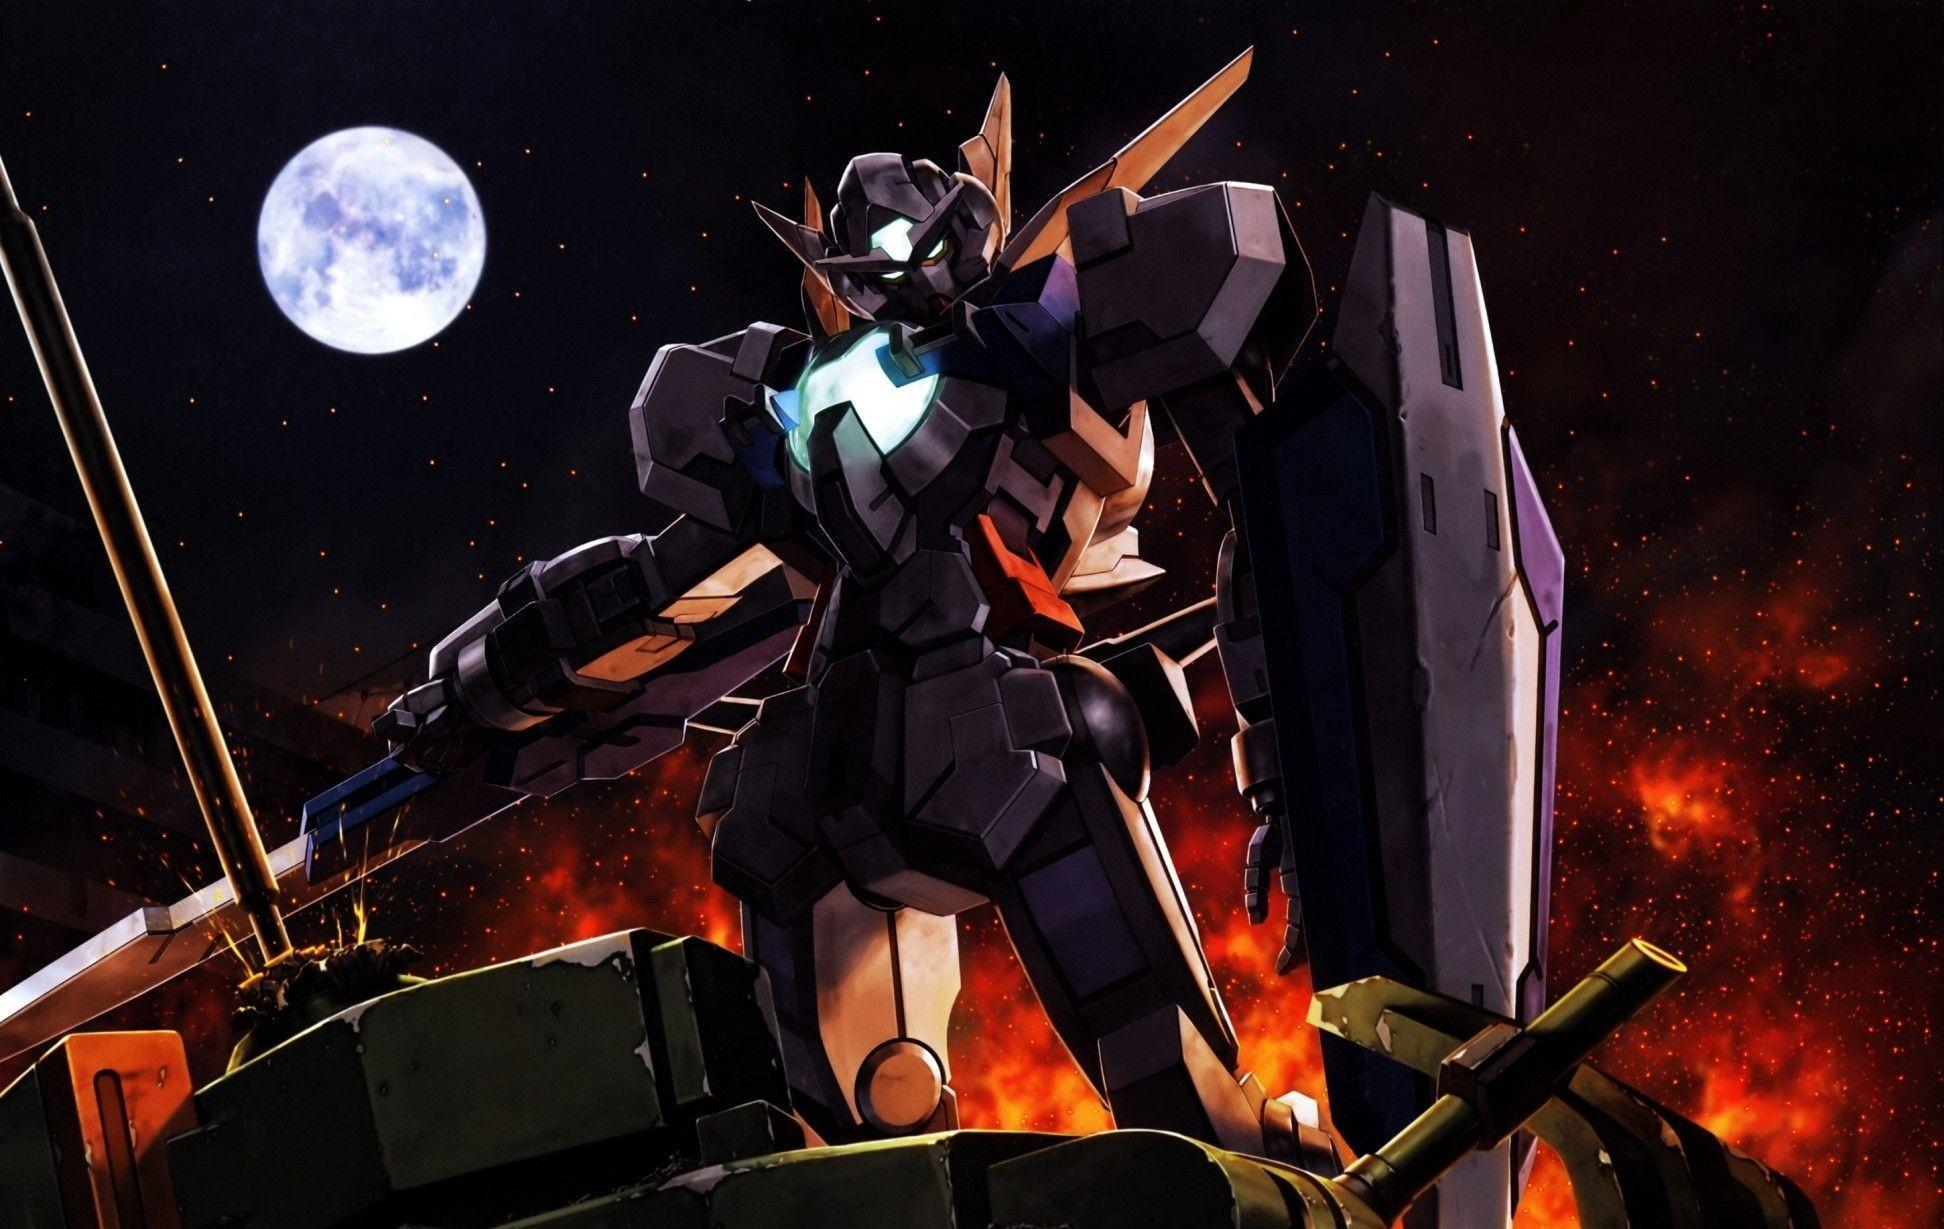 The Image of Gundam 1944x1229 HD Wallpapers